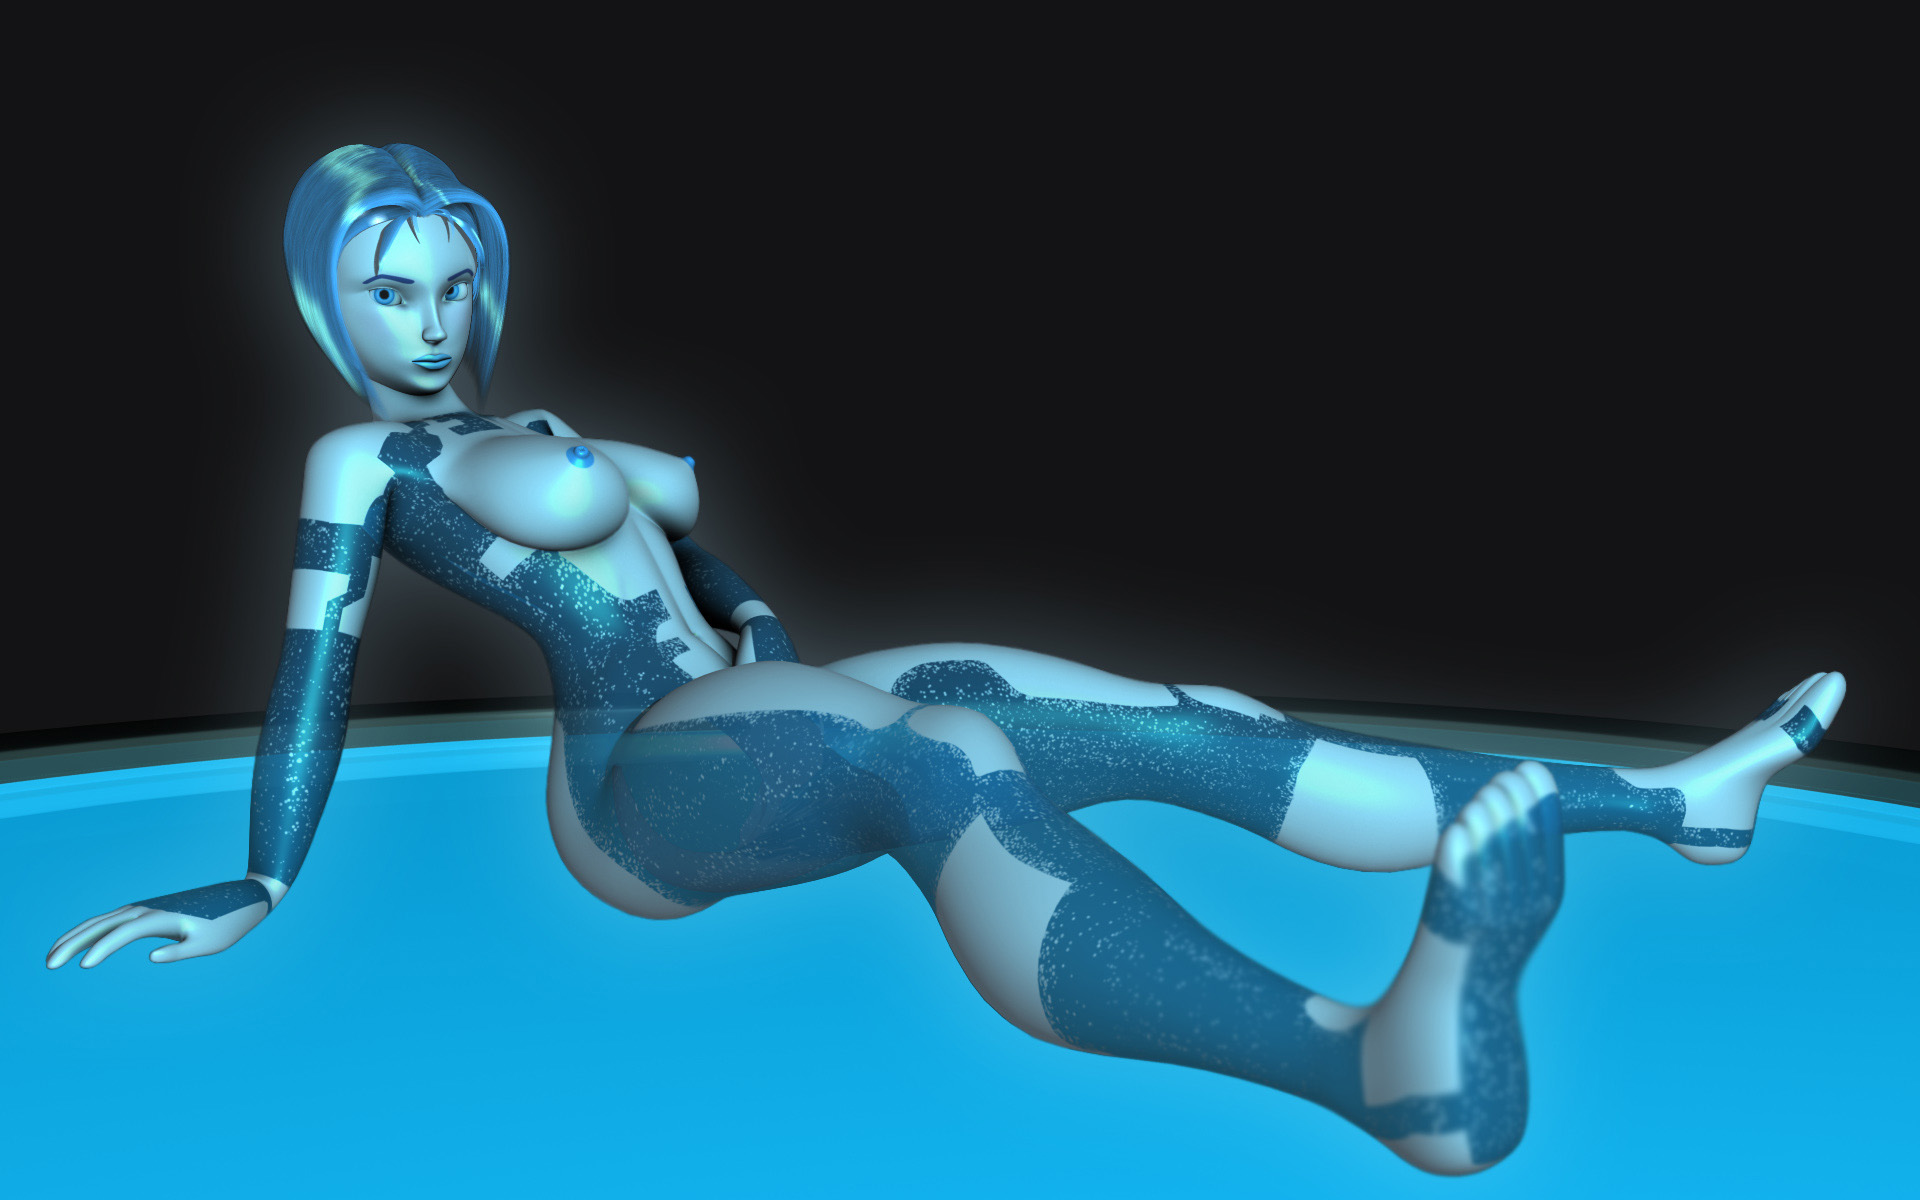 Naked pics of cortana on halo fucking pictures